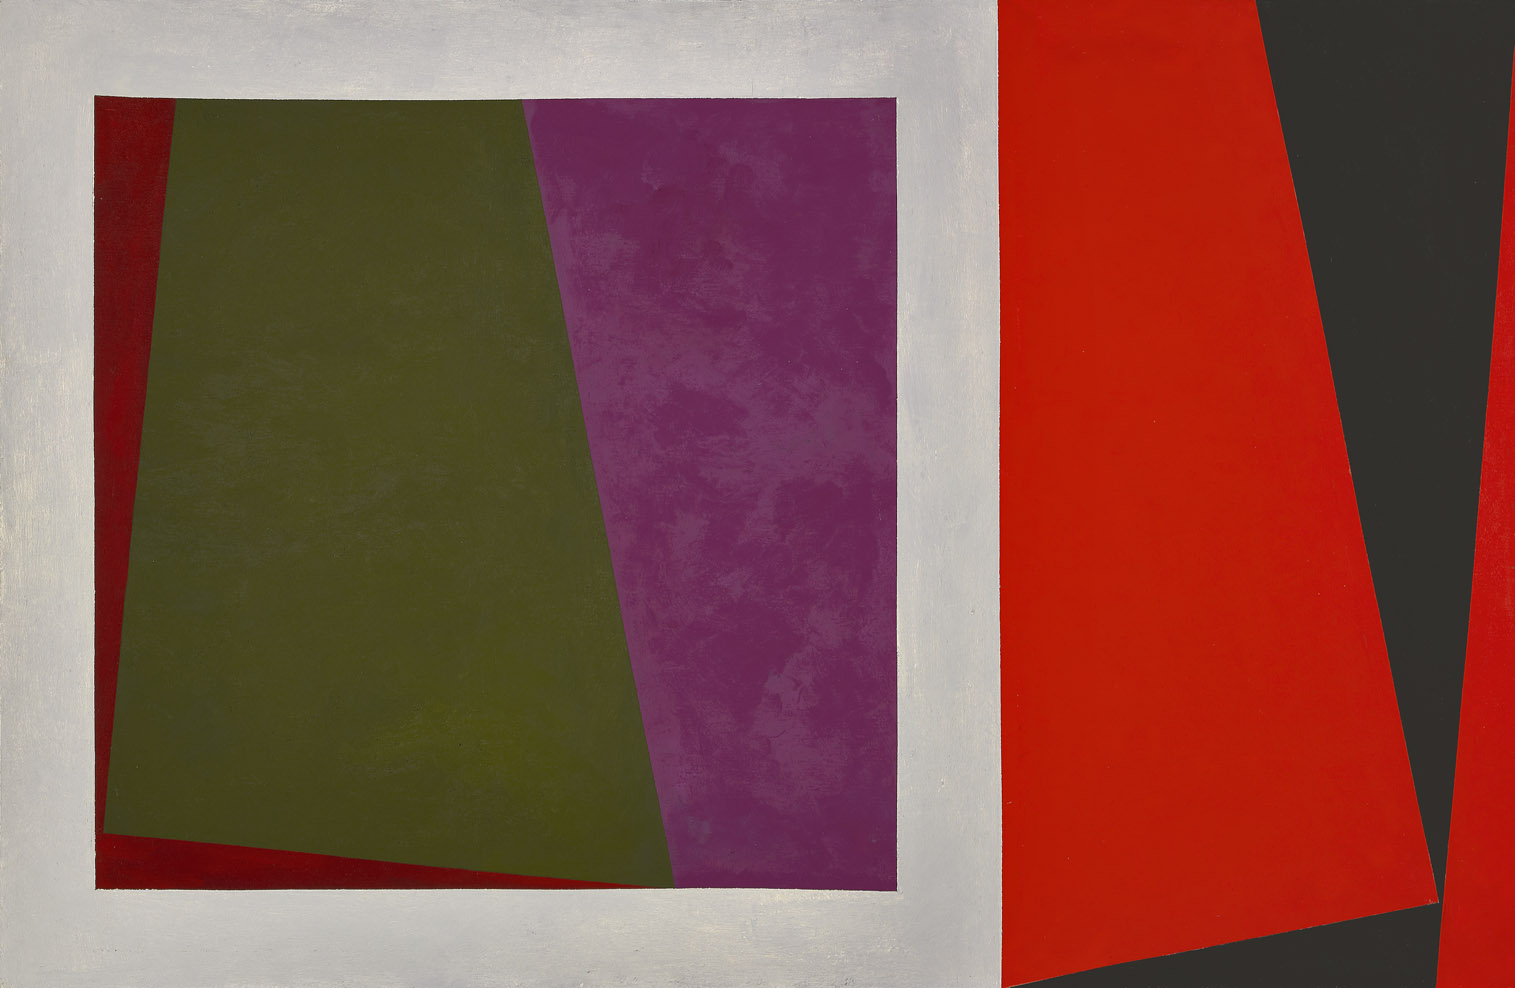 Magical Space Forms , 1960  oil on canvas 42 x 64 inches; 106.7 x 162.6 centimeters